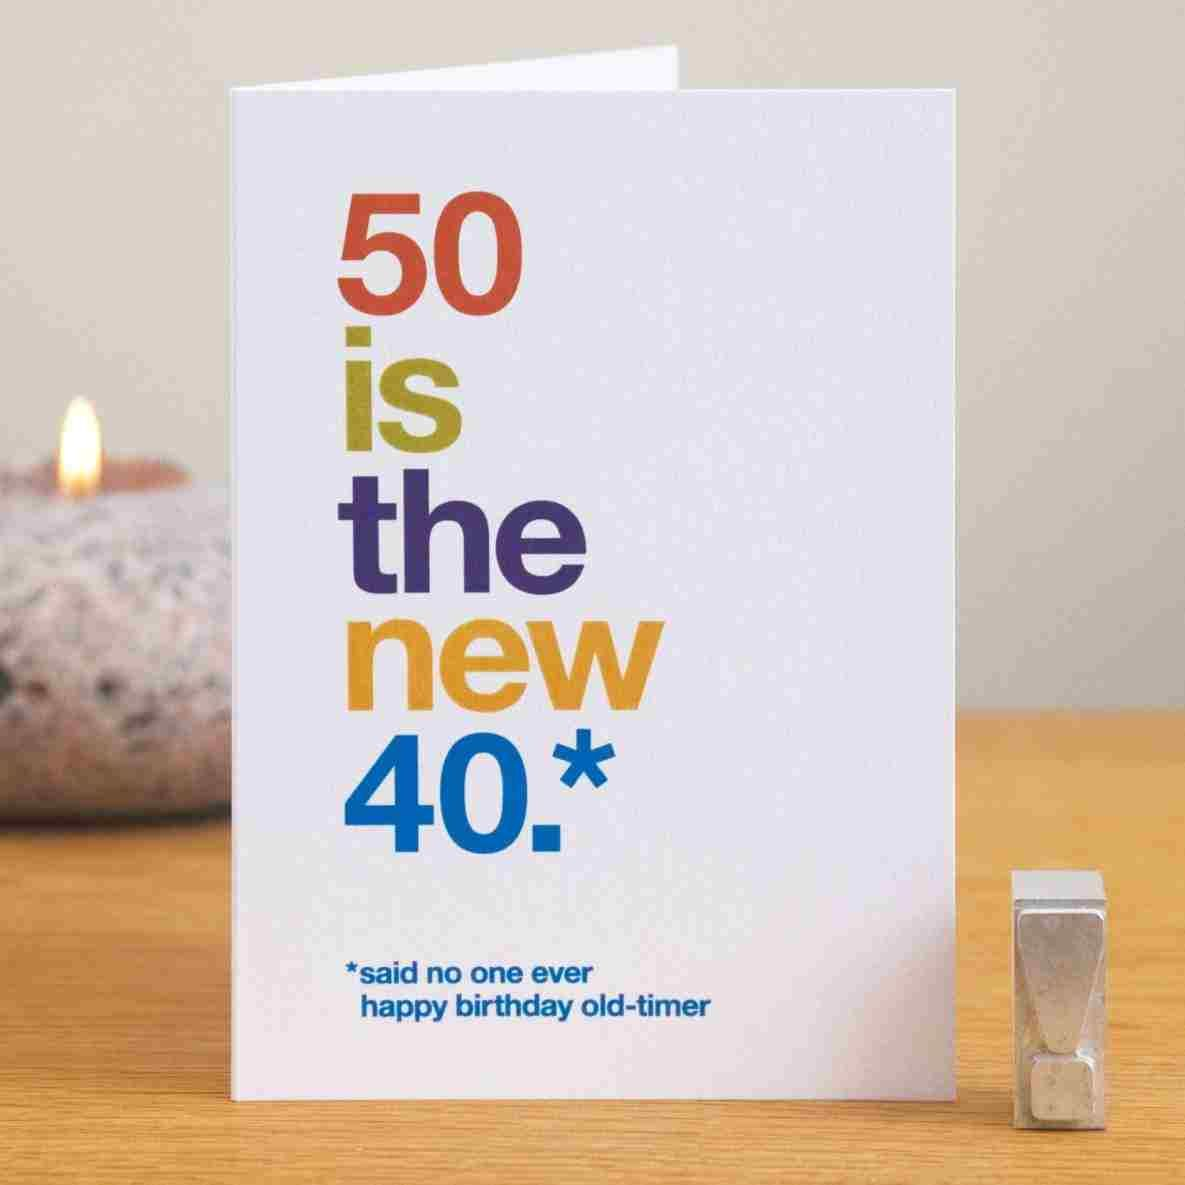 50 Rocks Birthday Present Ideas For Year Old Craftyideas Cake